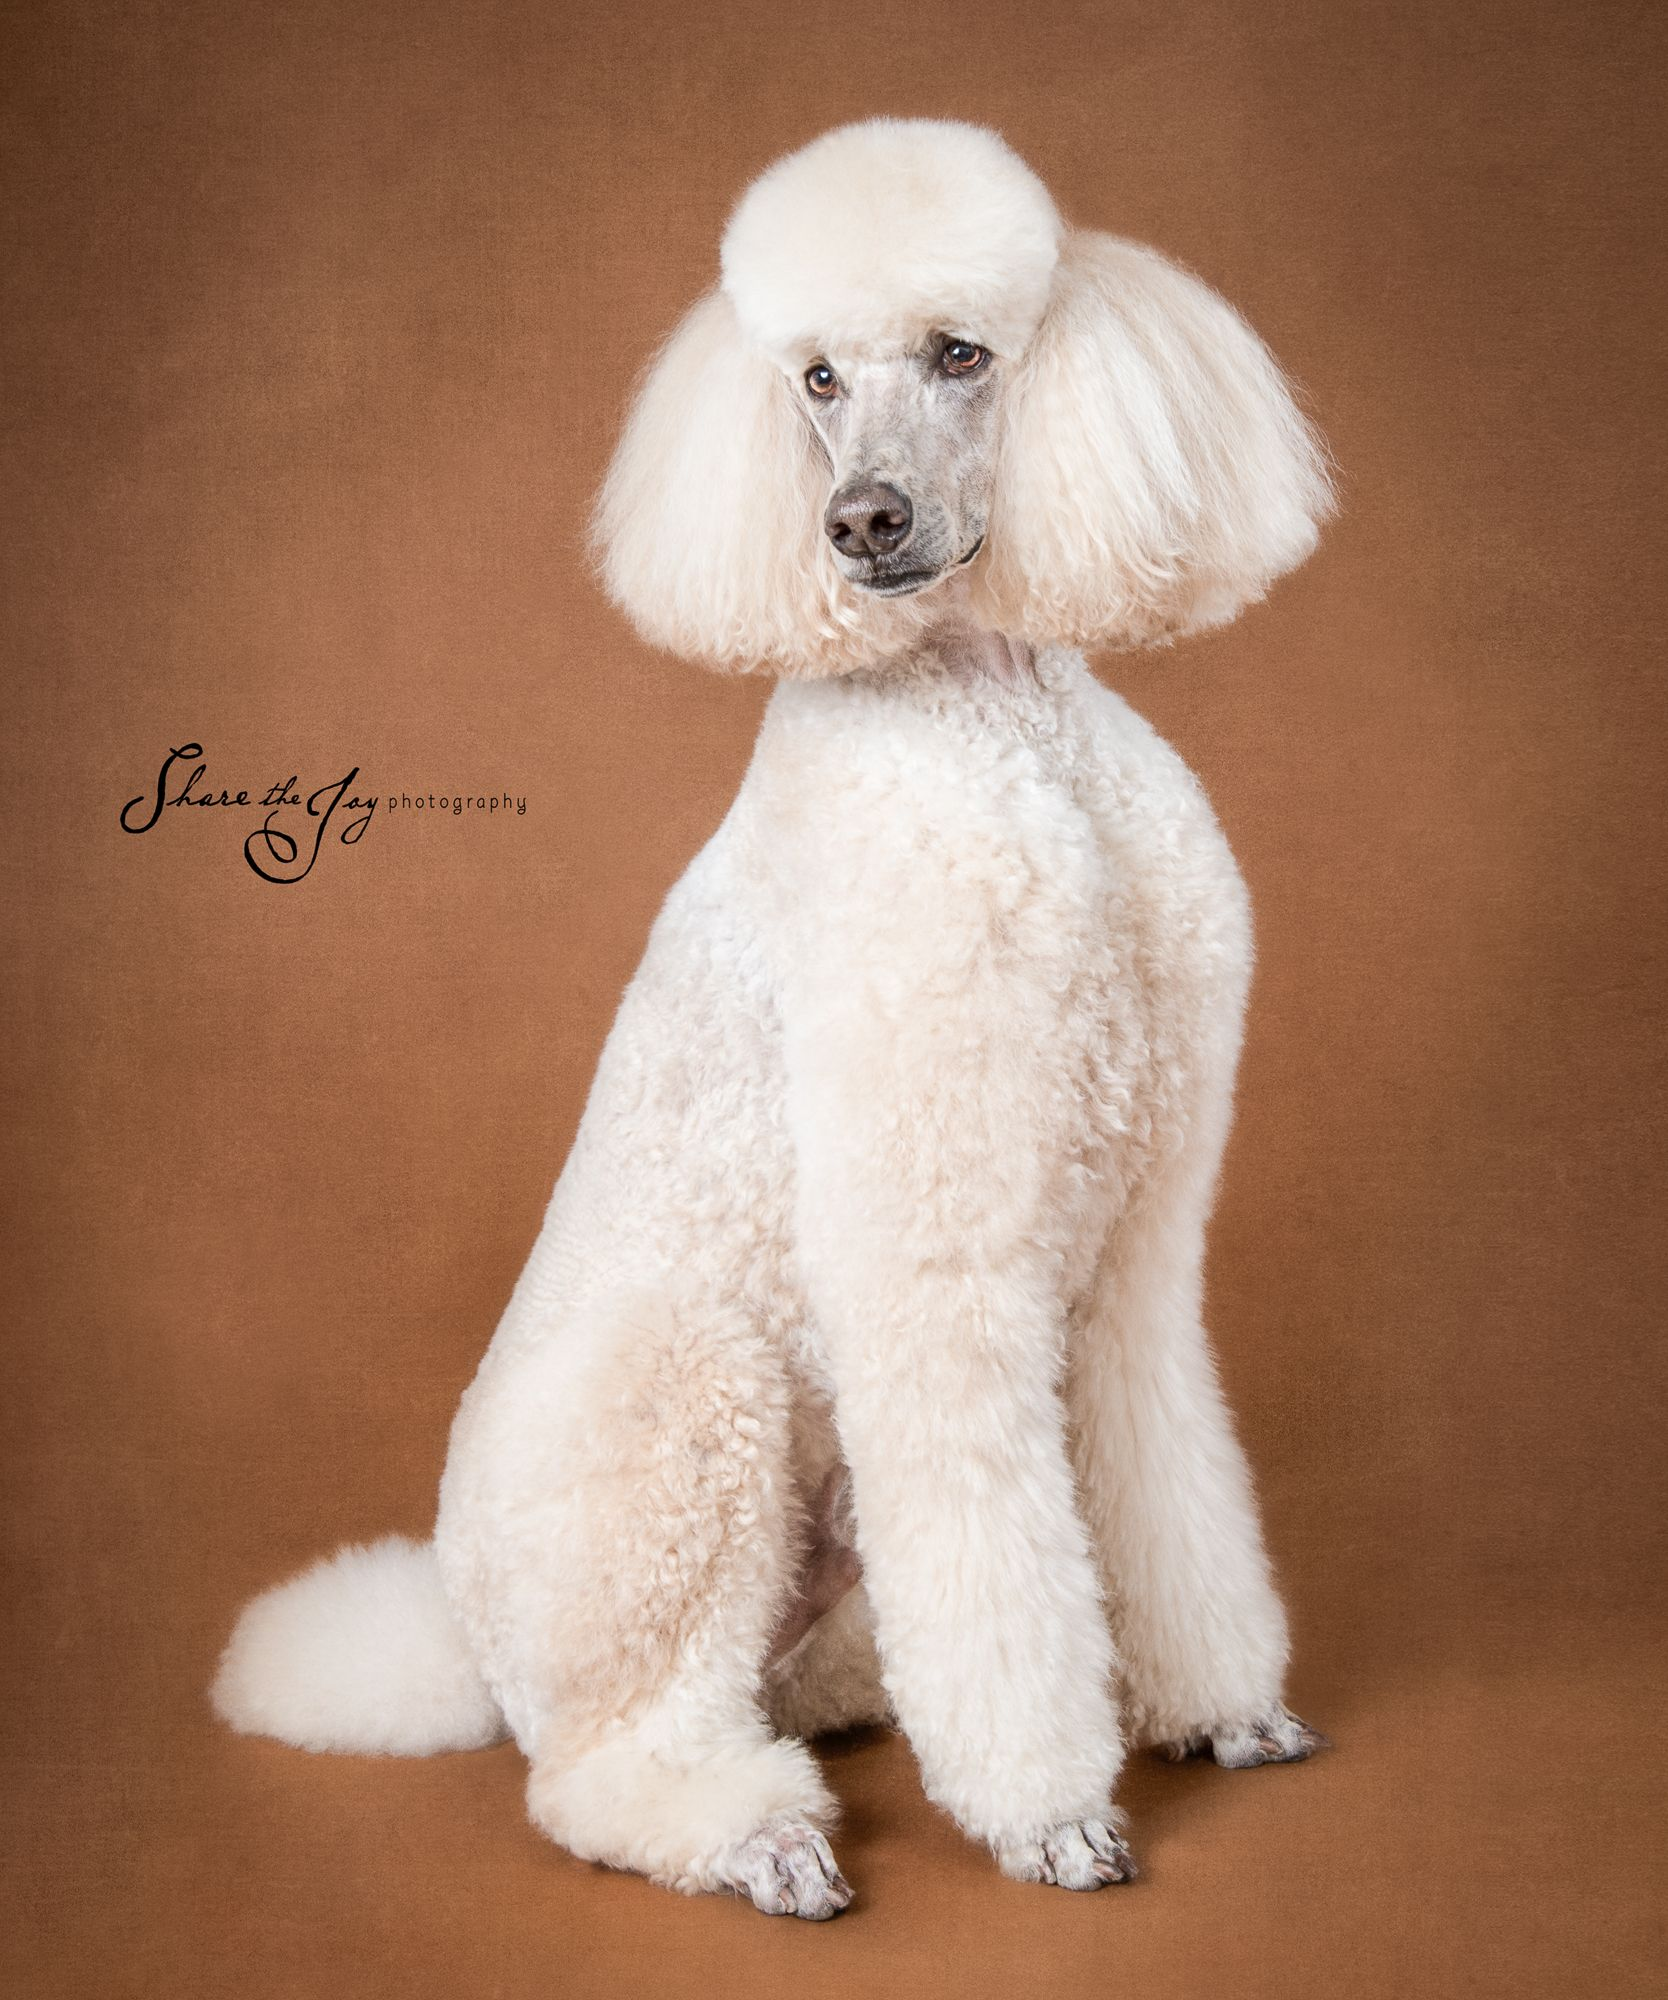 Louie Photographed At An Event To Benefit Norcal Poodle Rescue